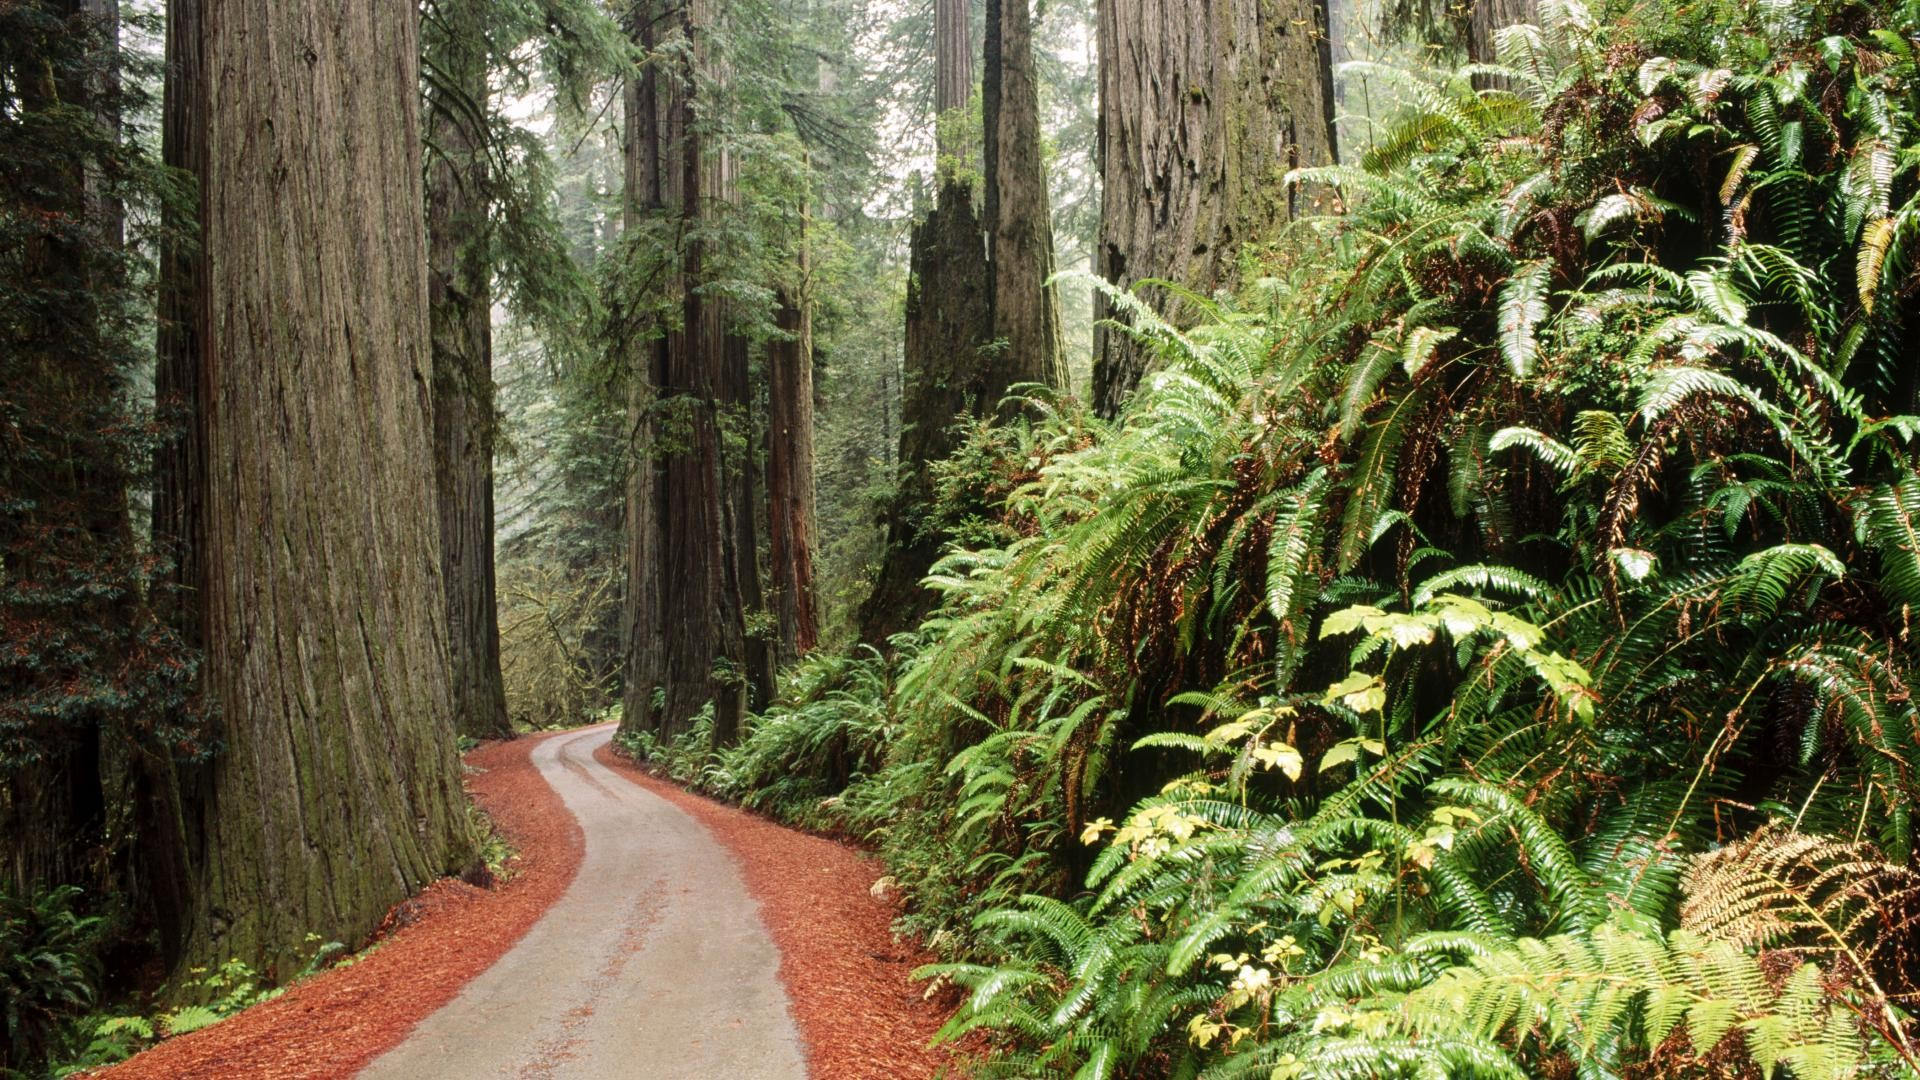 1920x1080 Download Background - Redwood National Park, California - Free Cool  Backgrounds and Wallpapers for your Desktop Or Laptop.